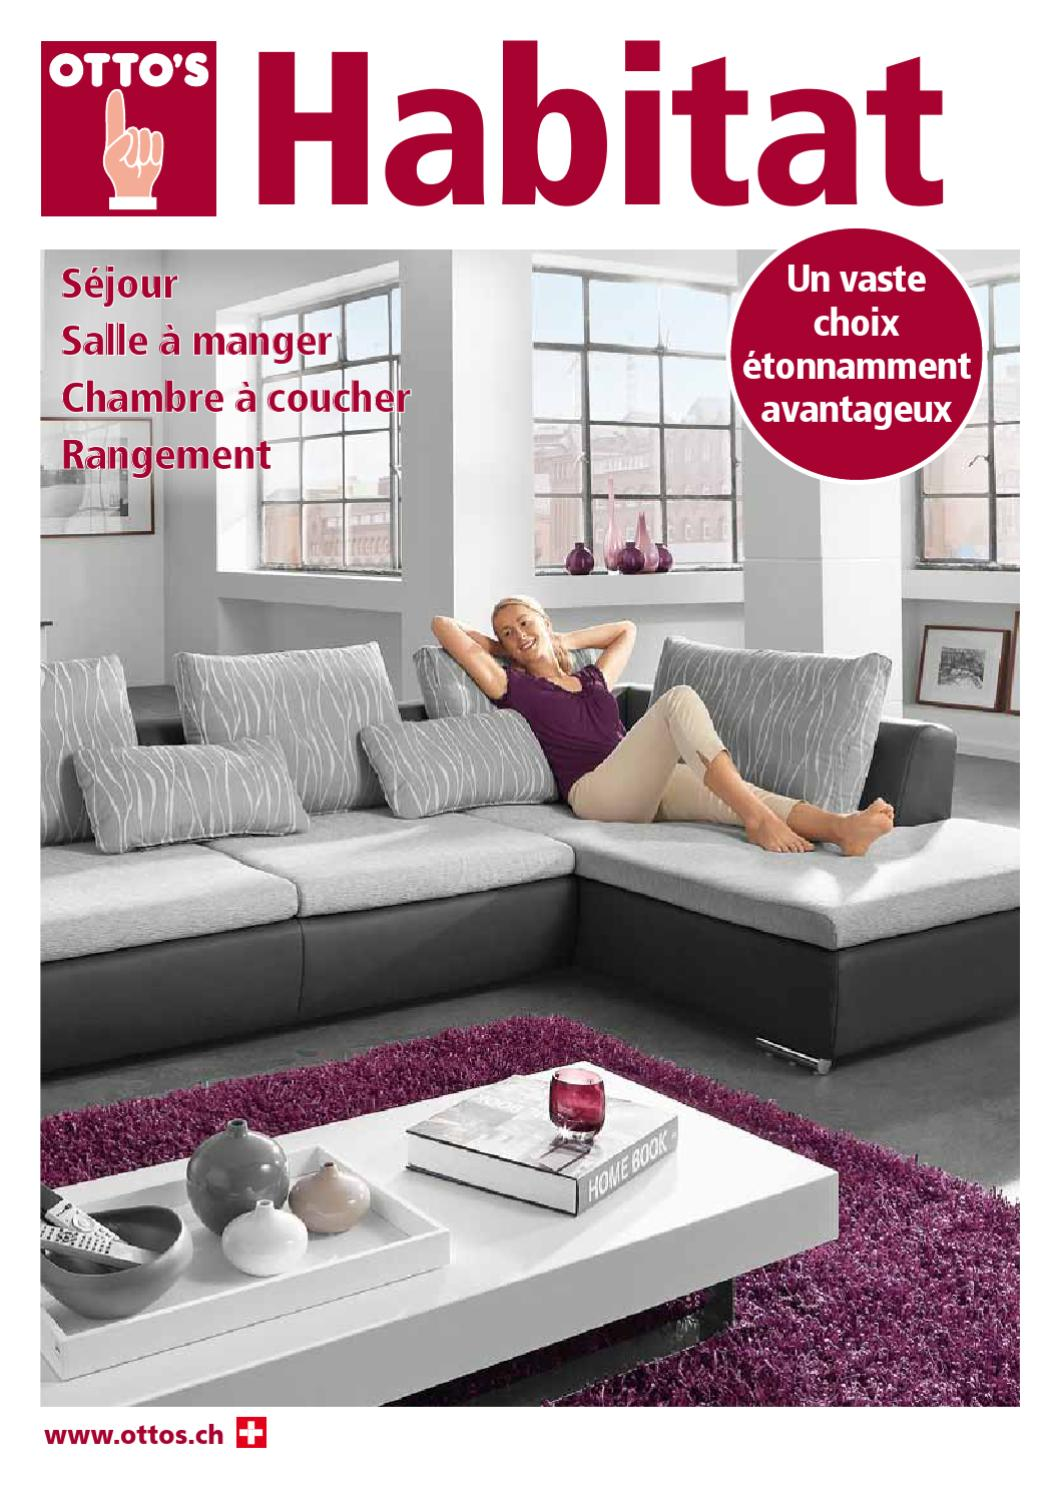 otto 39 s catalogue de meubles 2011 by otto 39 s ag issuu